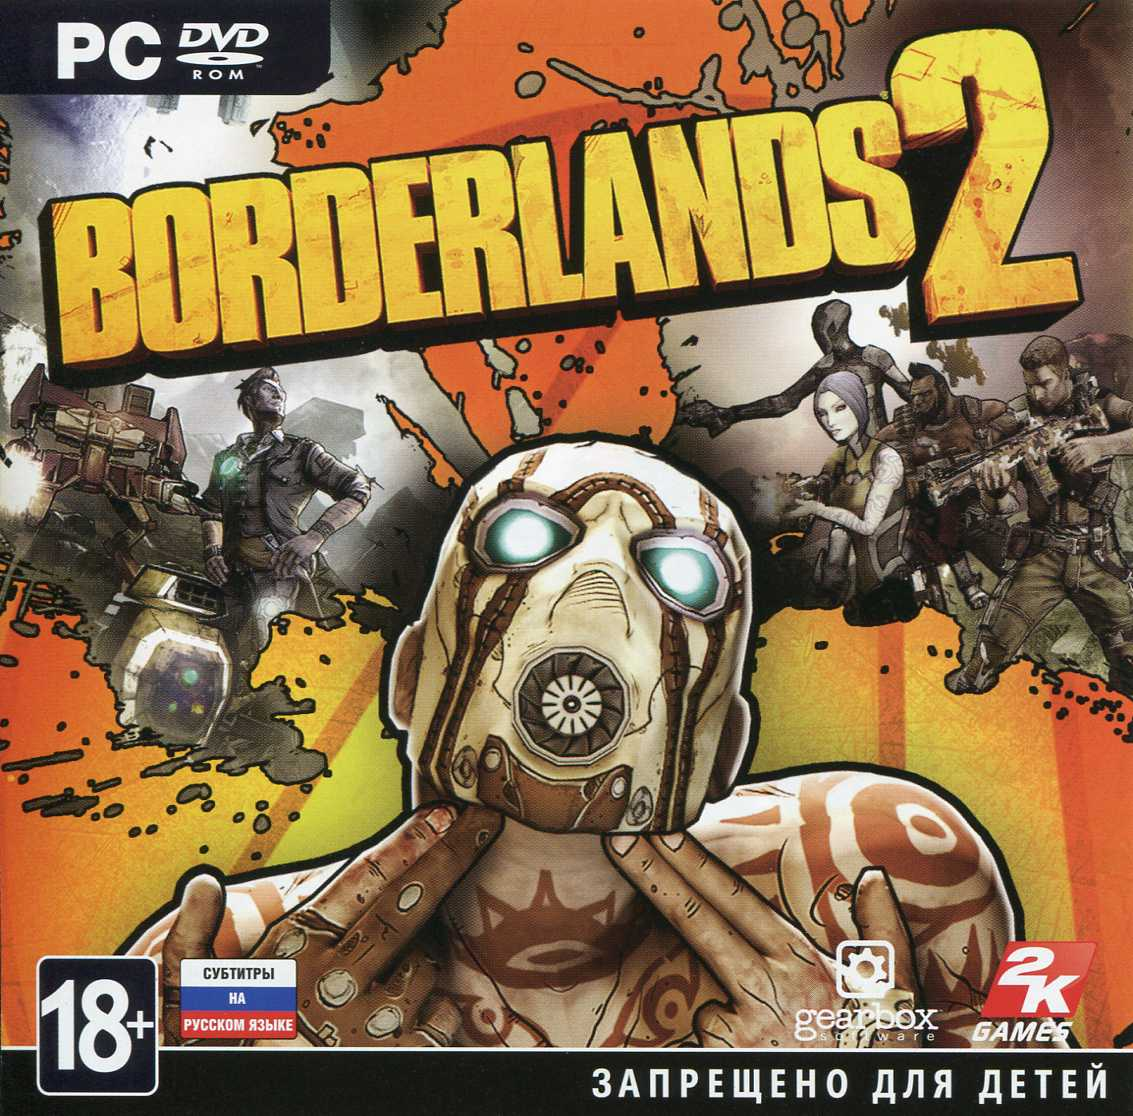 Borderlands 2 (Key Steam)